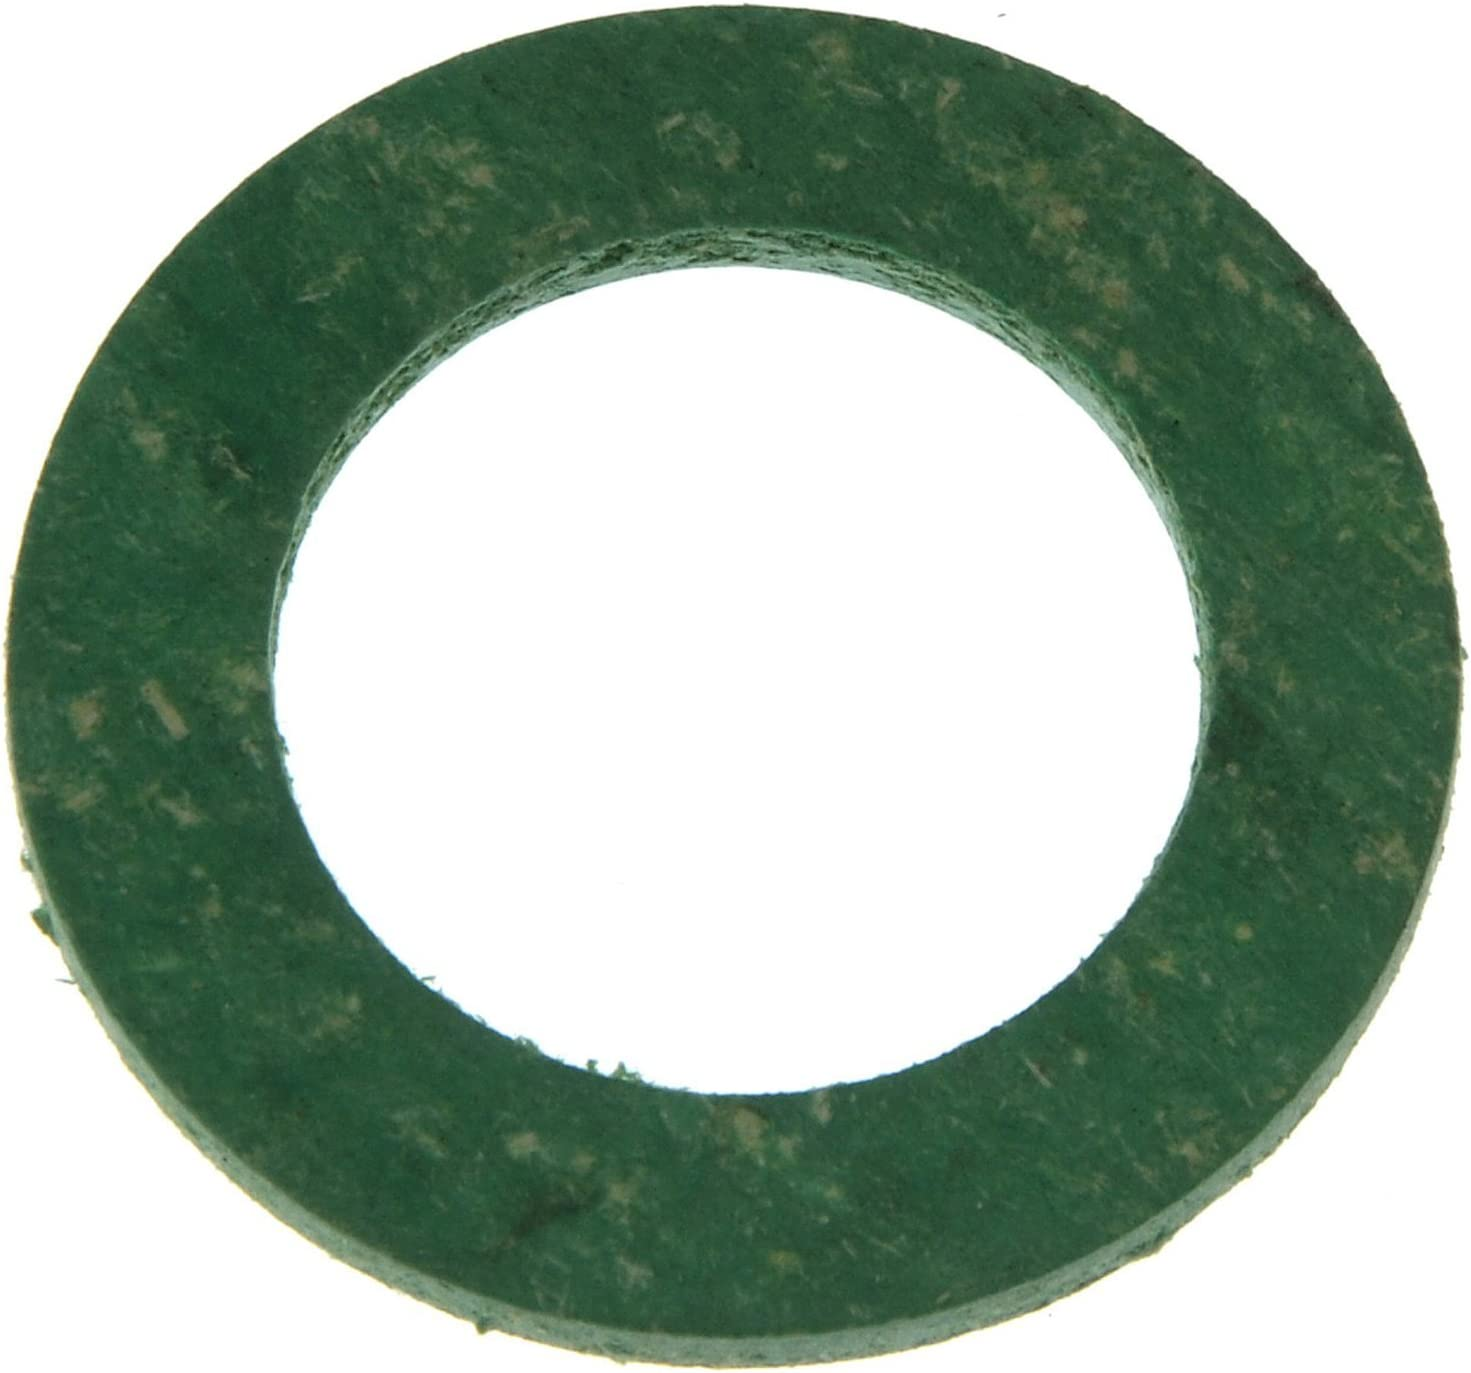 Dorman 097-130 Synthetic Drain Plug Gasket, Fits M16.4, M18 for Select Toyota Models, 25 Pack